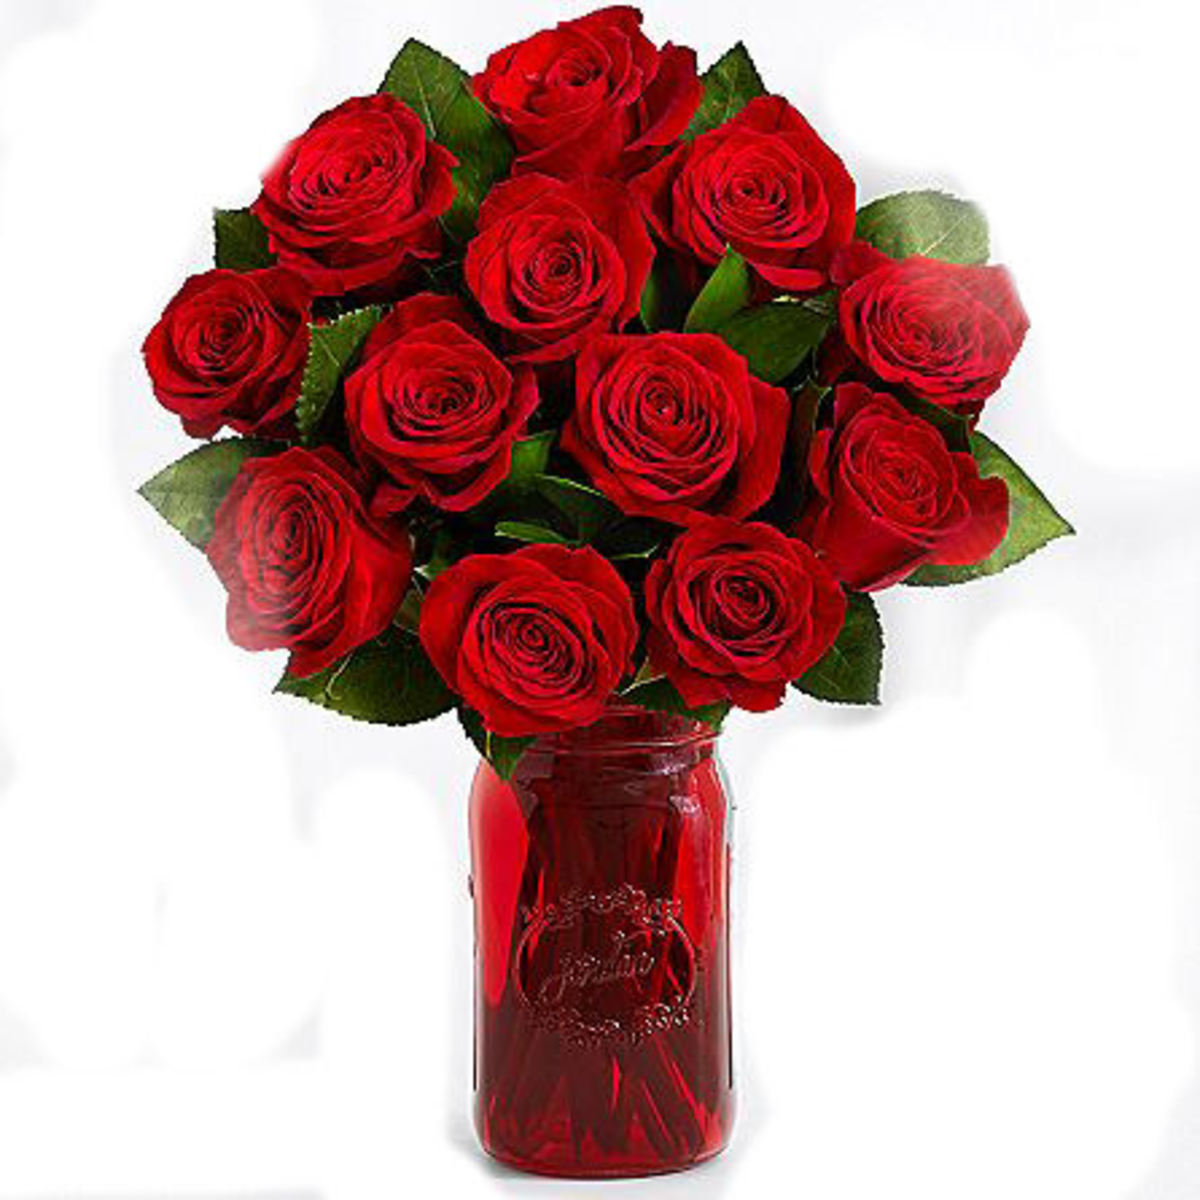 valentines-day-roses-what-you-should-know